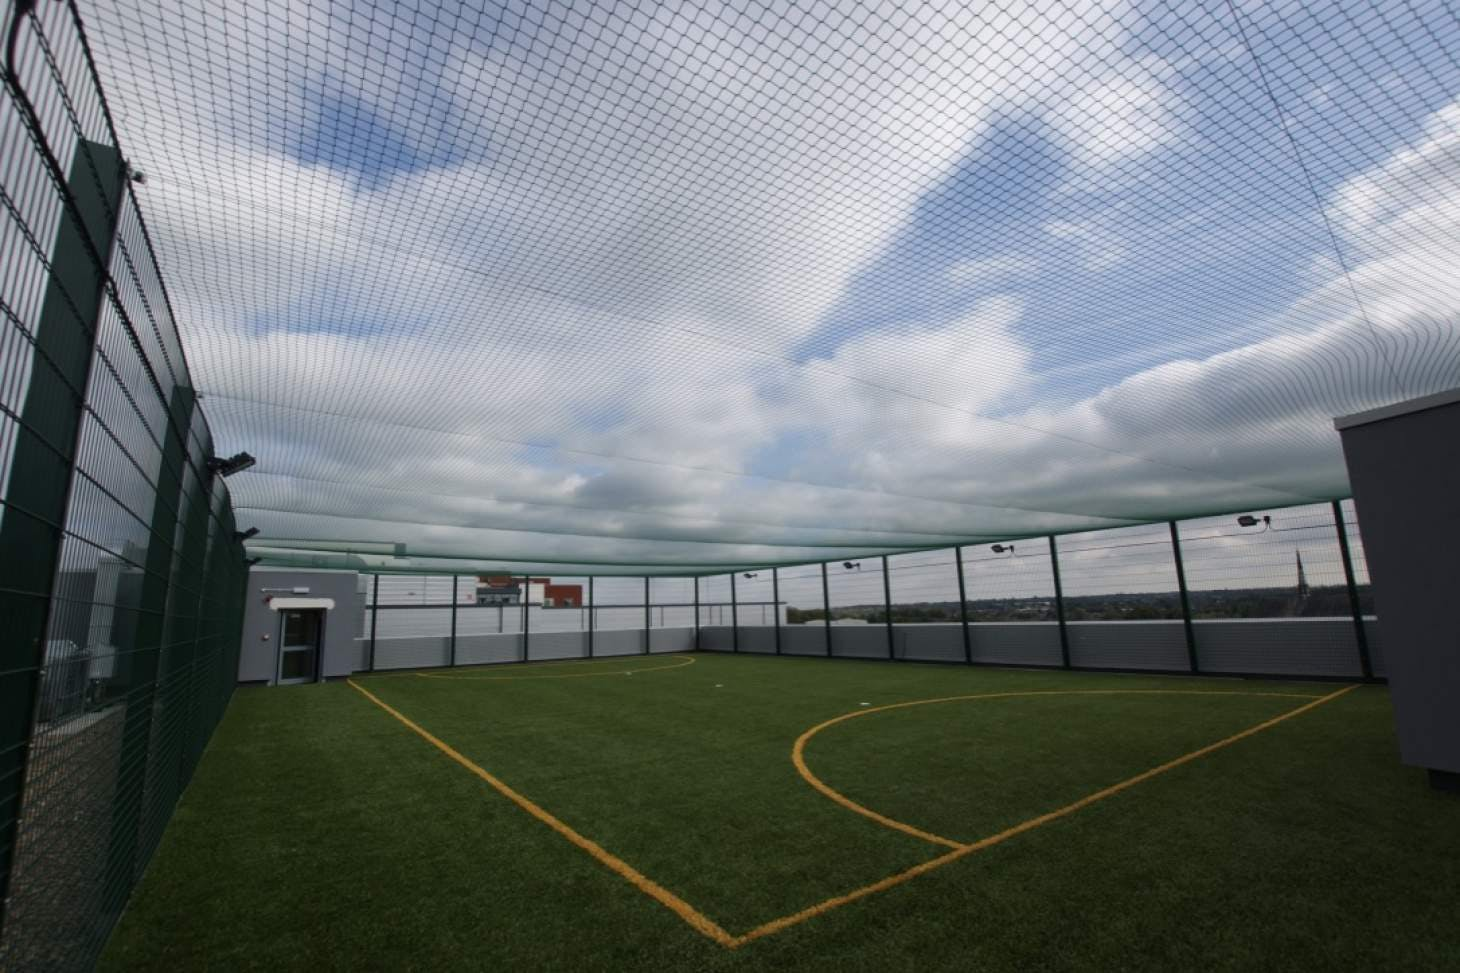 St John's C of E Primary School Watford 5 a side | 3G Astroturf football pitch